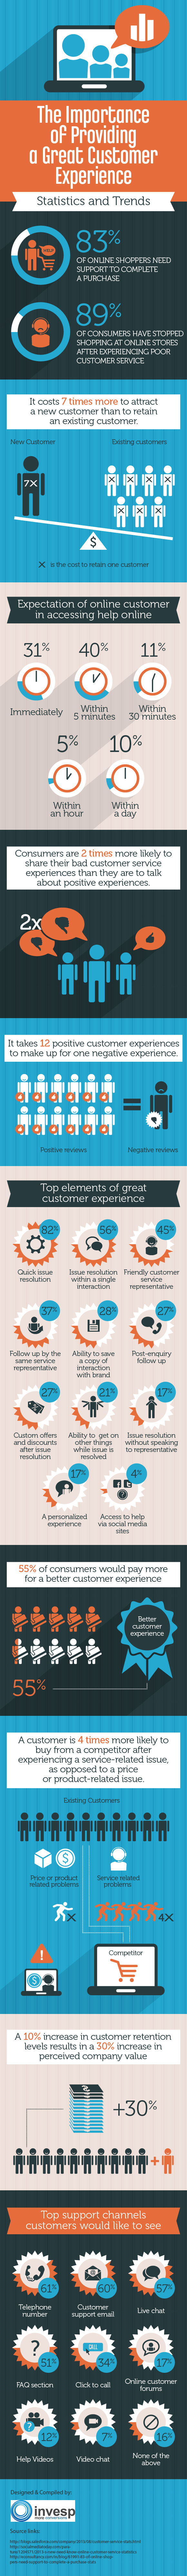 The Importance of Providing a Great Customer Experience – Statistics and Trends